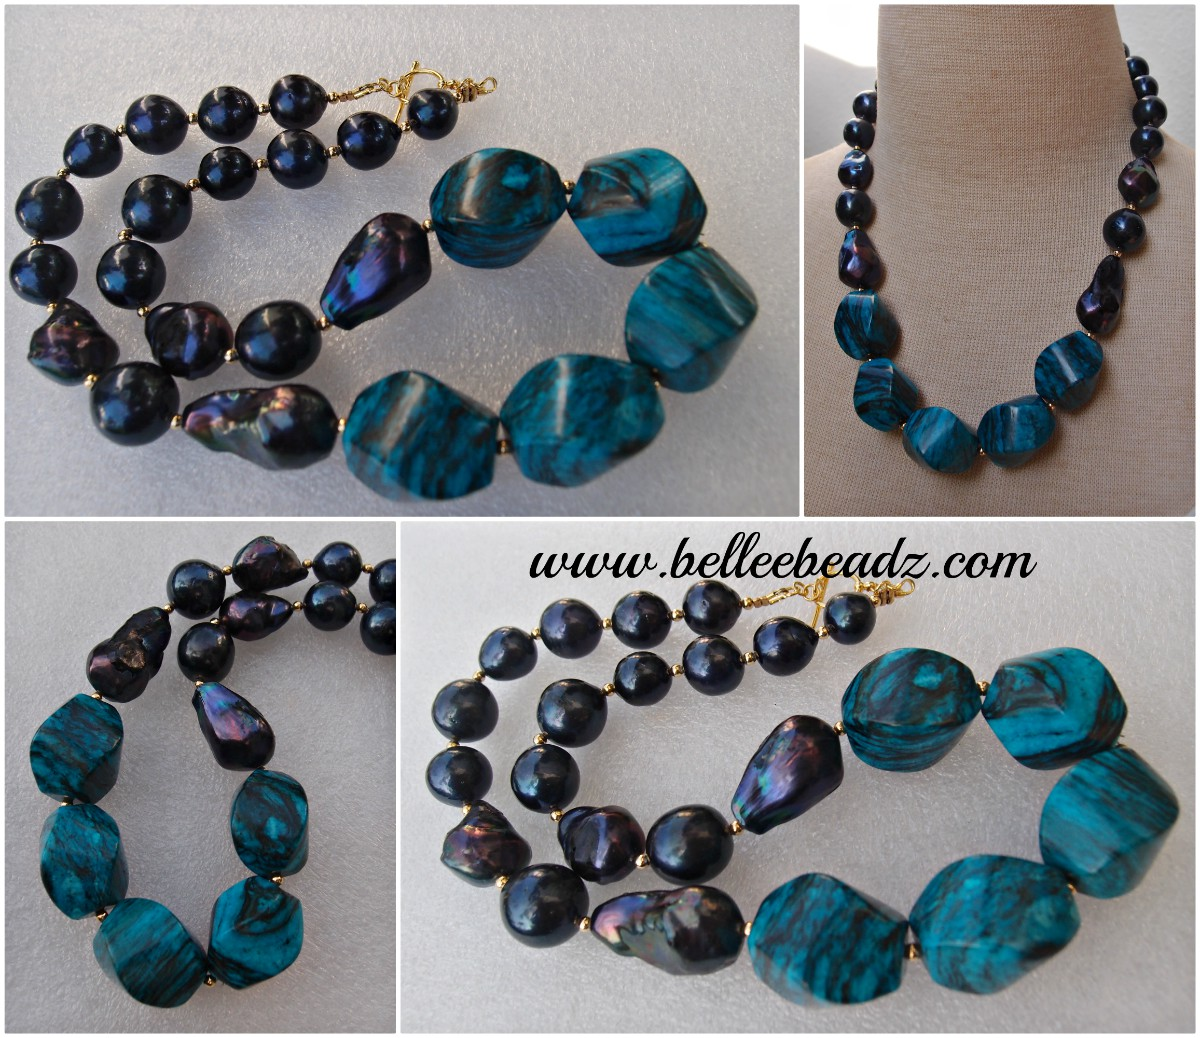 12 mm 9 Stunning Cushion Shaped Black Agate Gemstone beads